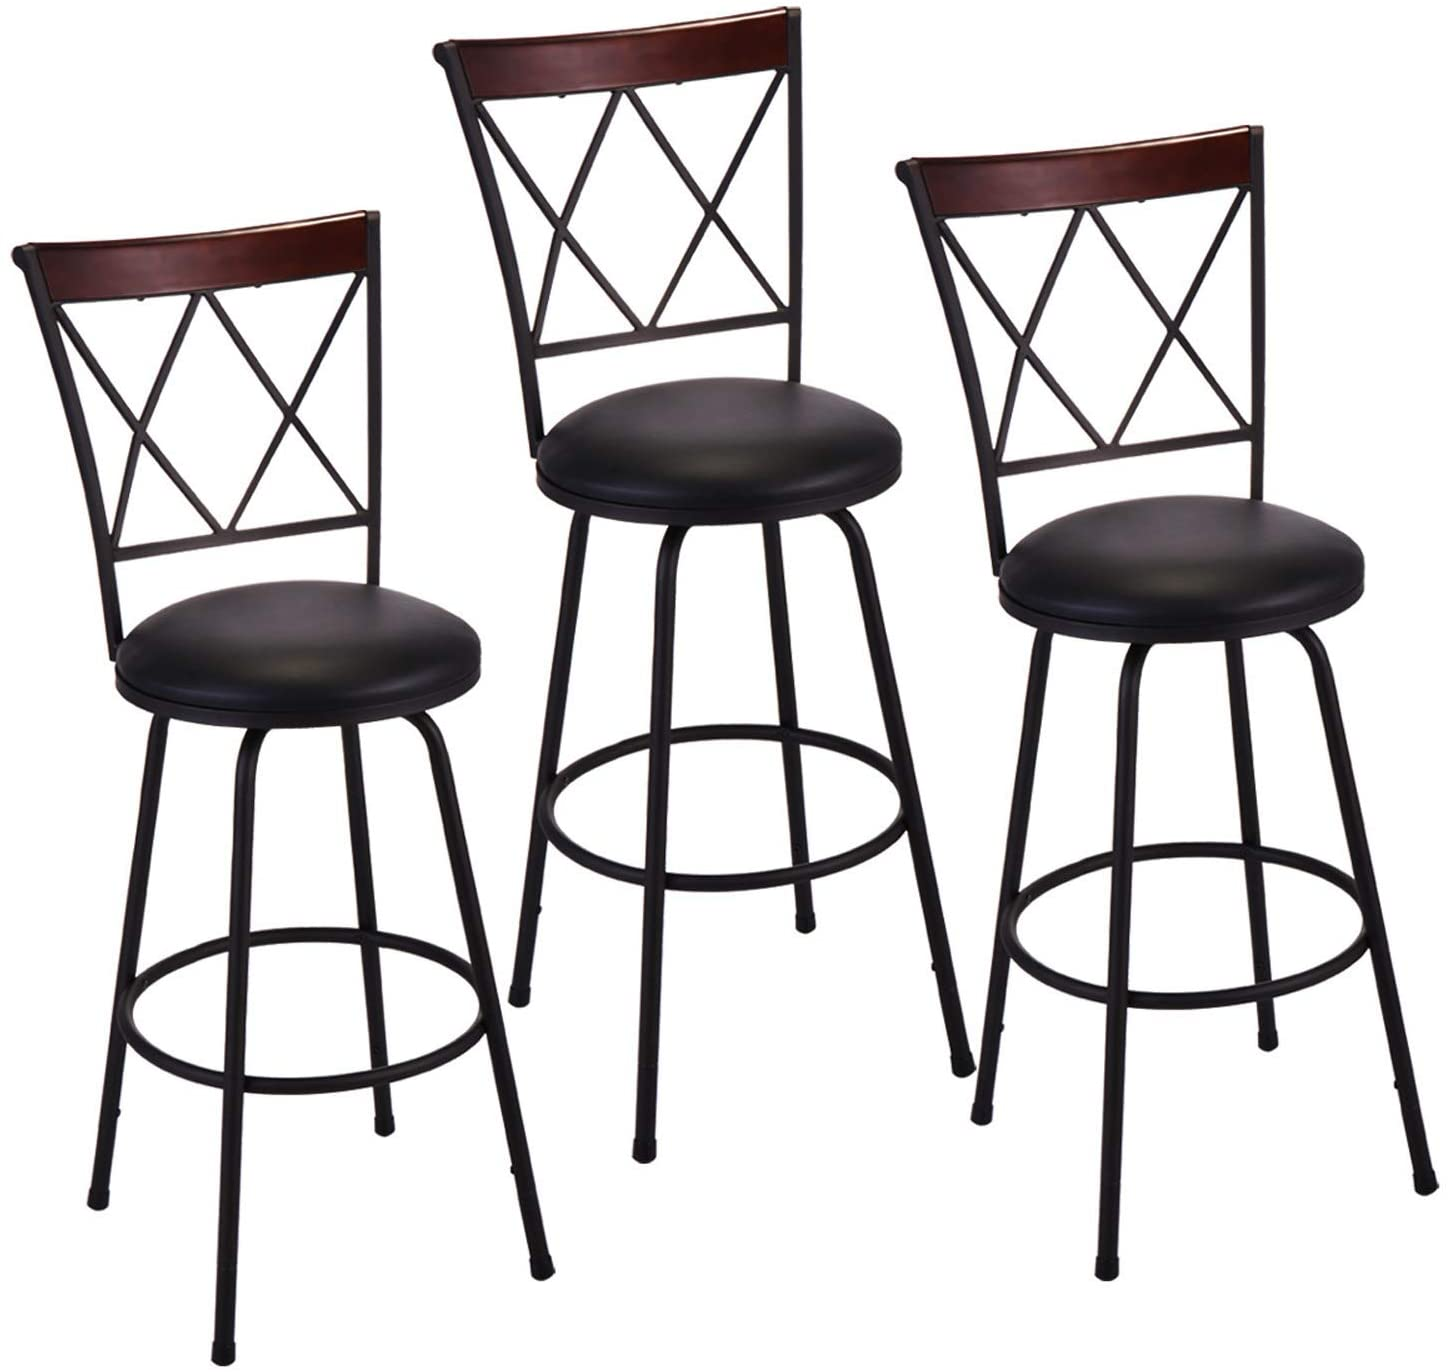 Bar Stools Set of 3, PU Leather Swivel Height Adjustable Counter Chair, Modern Metal Barstools with Ergonomic Backrest and Footrest for Dining Room Kitchen, Black